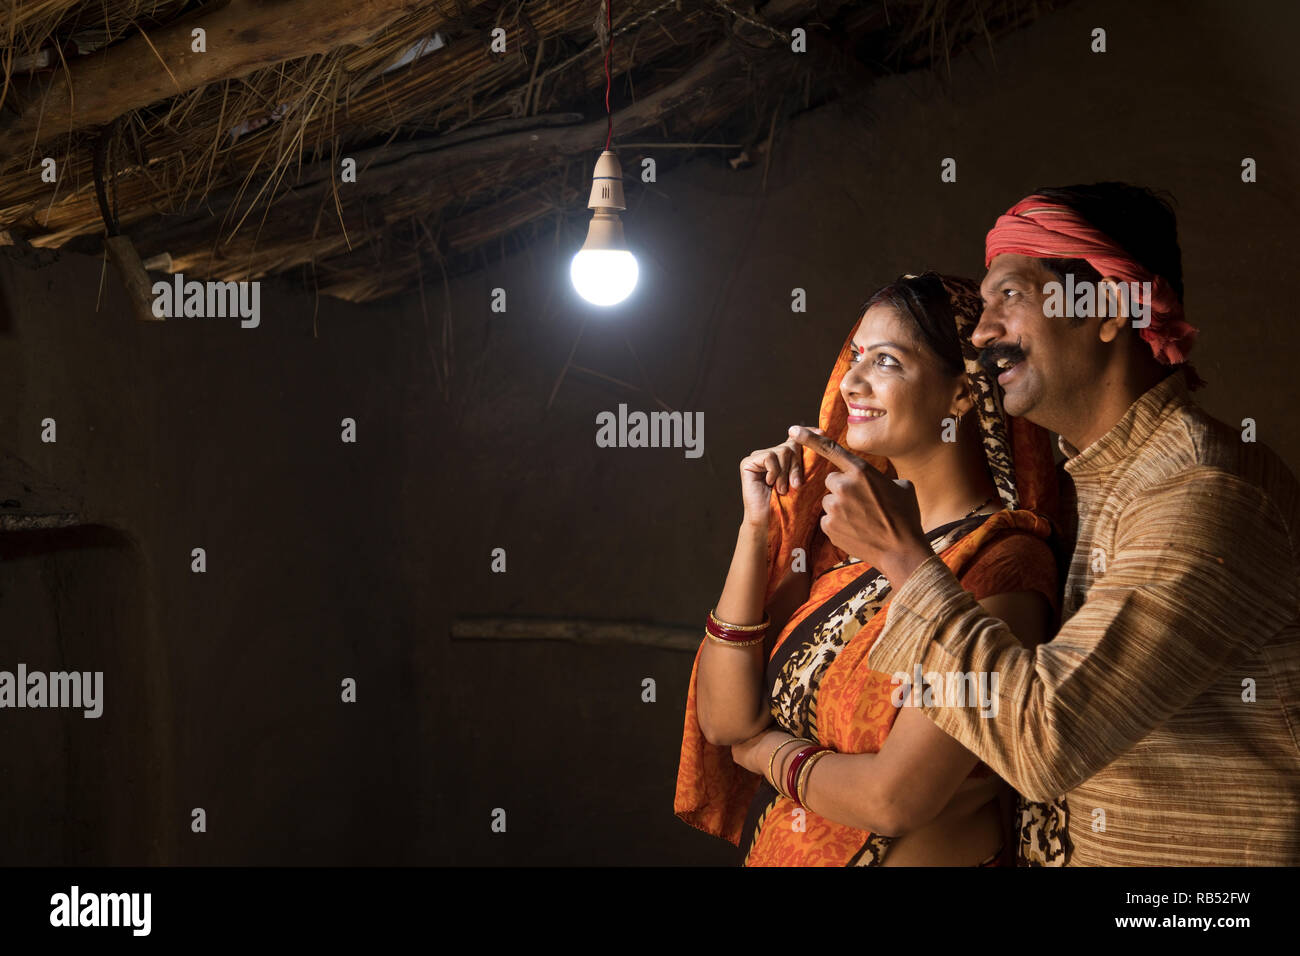 Rural Indian couple delighted at the glow of light bulb and electricity reaching their home after long wait - Stock Image